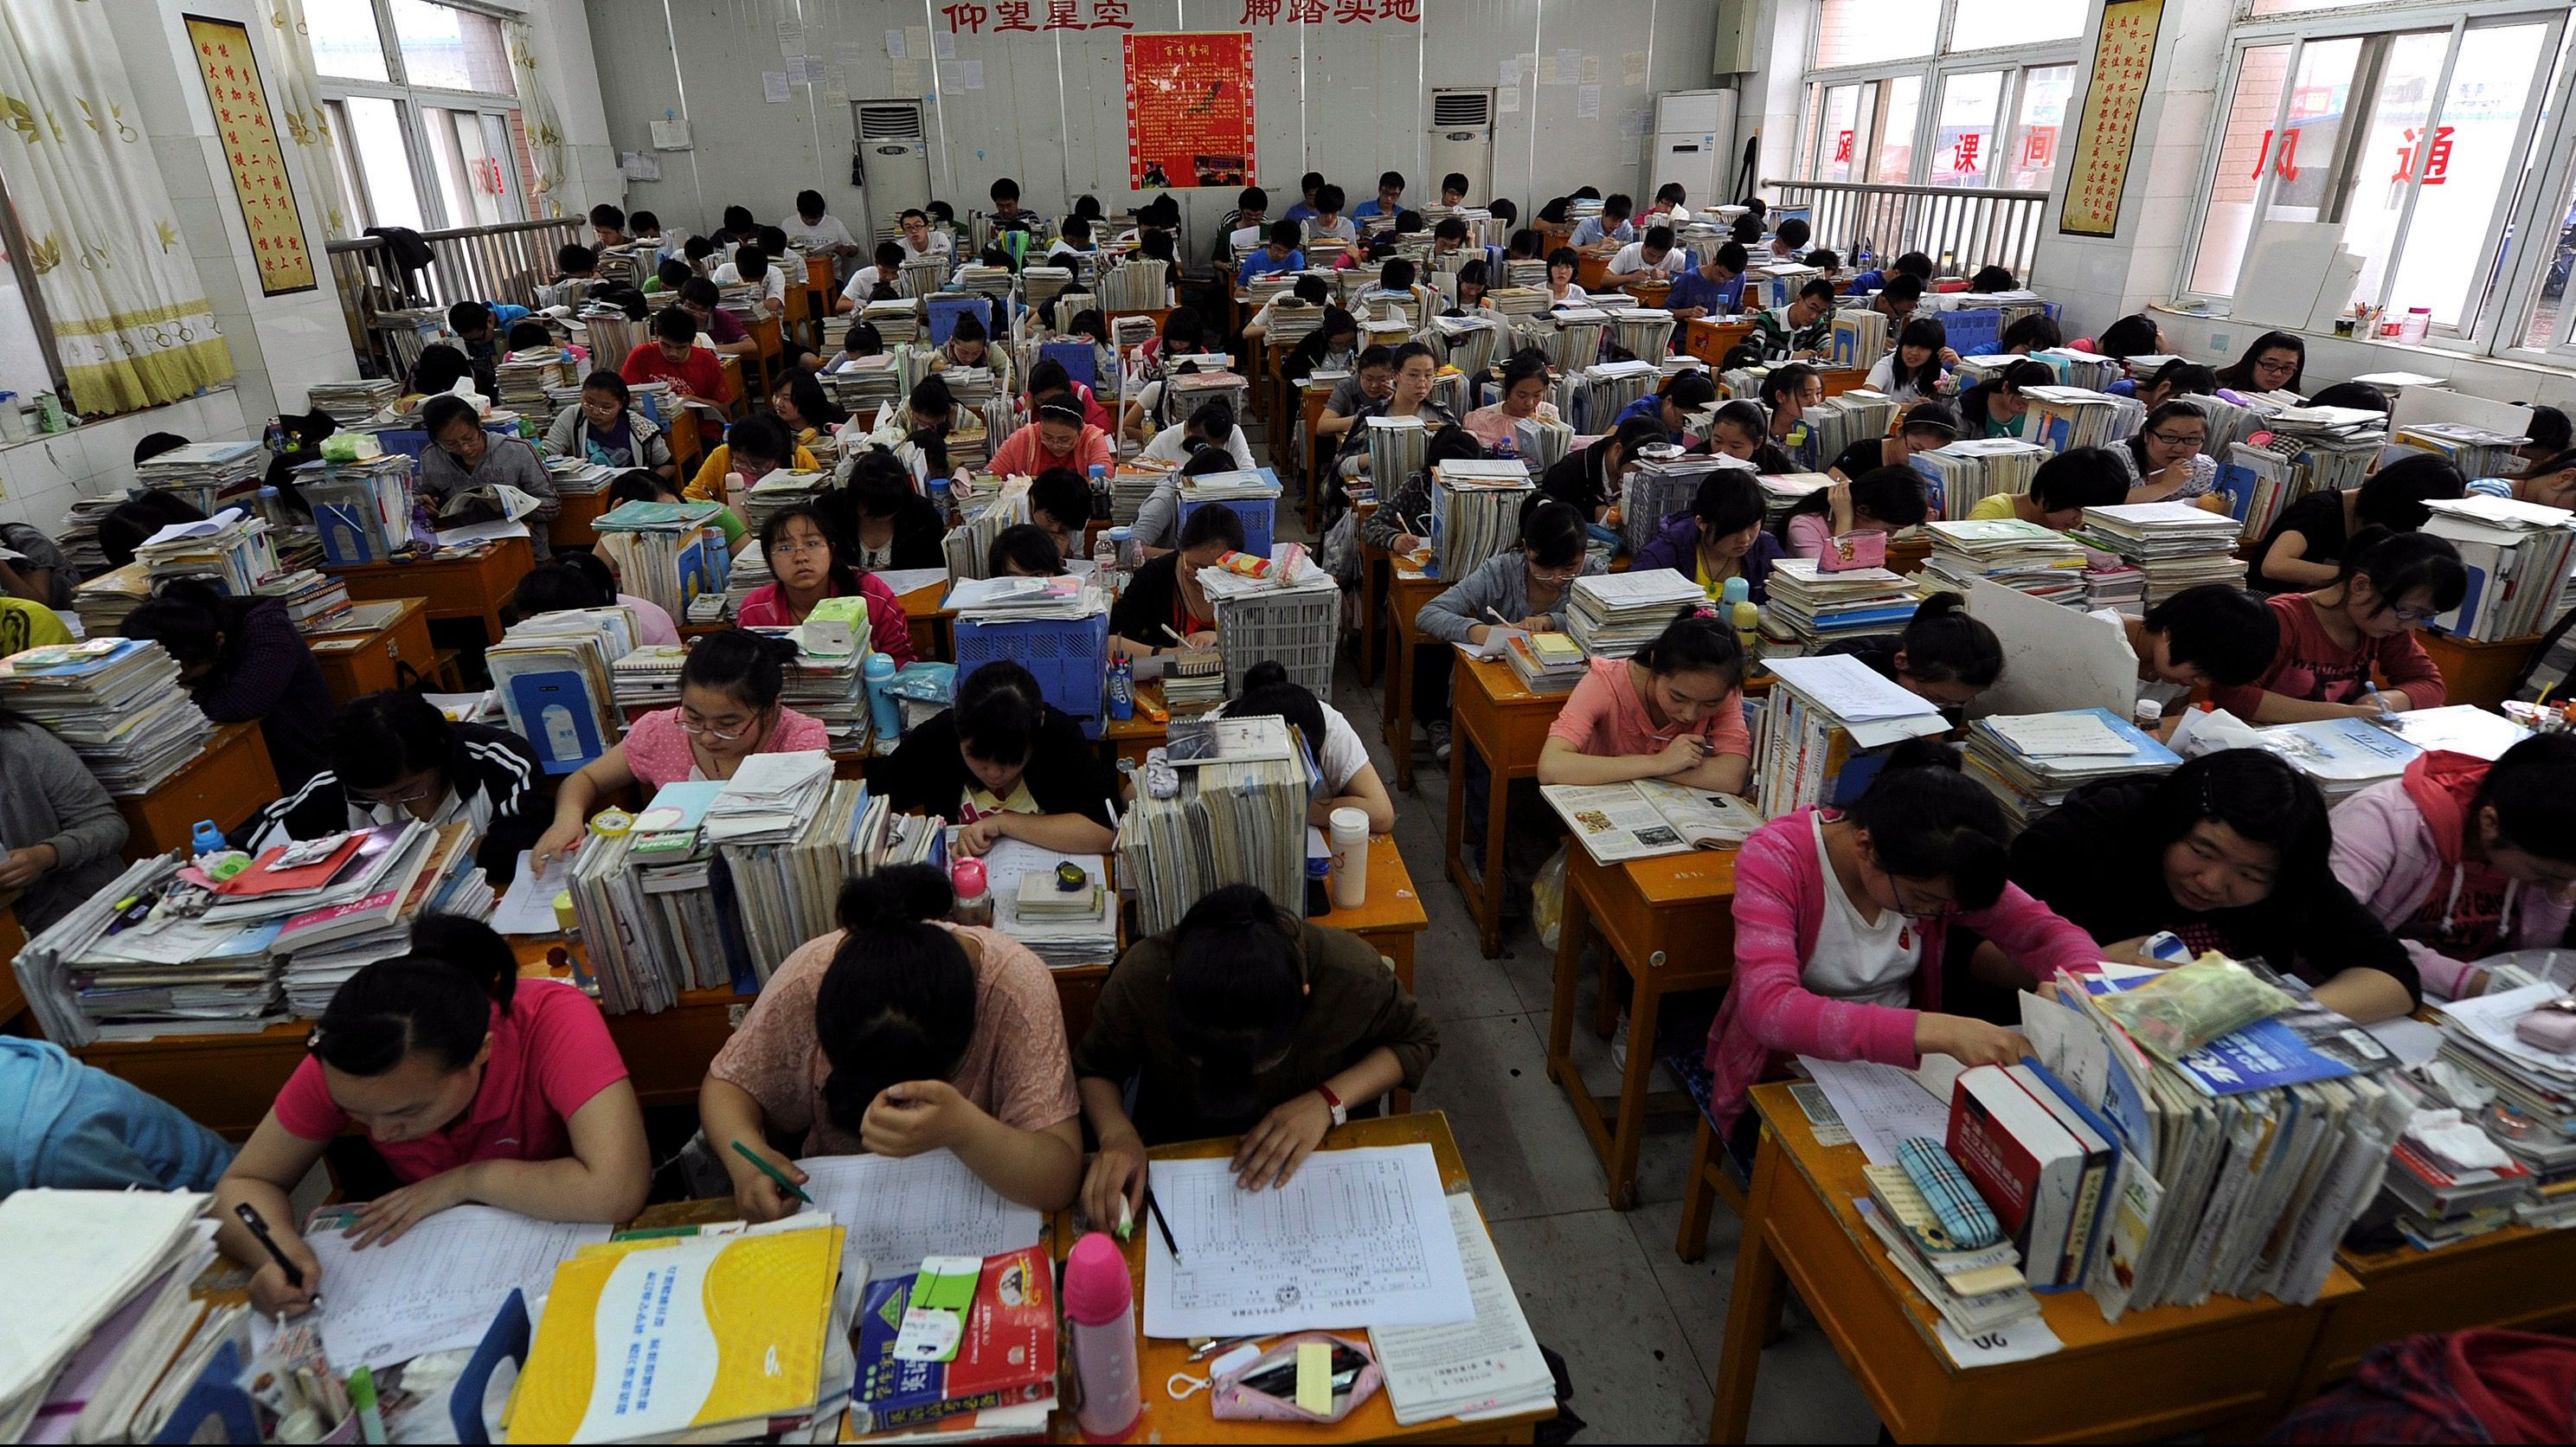 """Students prepare for the university entrance exam in a classroom in Hefei, Anhui Province June 2, 2012. The National College Entrance Exam, or """"Gaokao"""", is held in June every year. Picture taken June 2, 2012. REUTERS/Stringer (CHINA - Tags: SOCIETY EDUCATION) - GM1E863177901"""